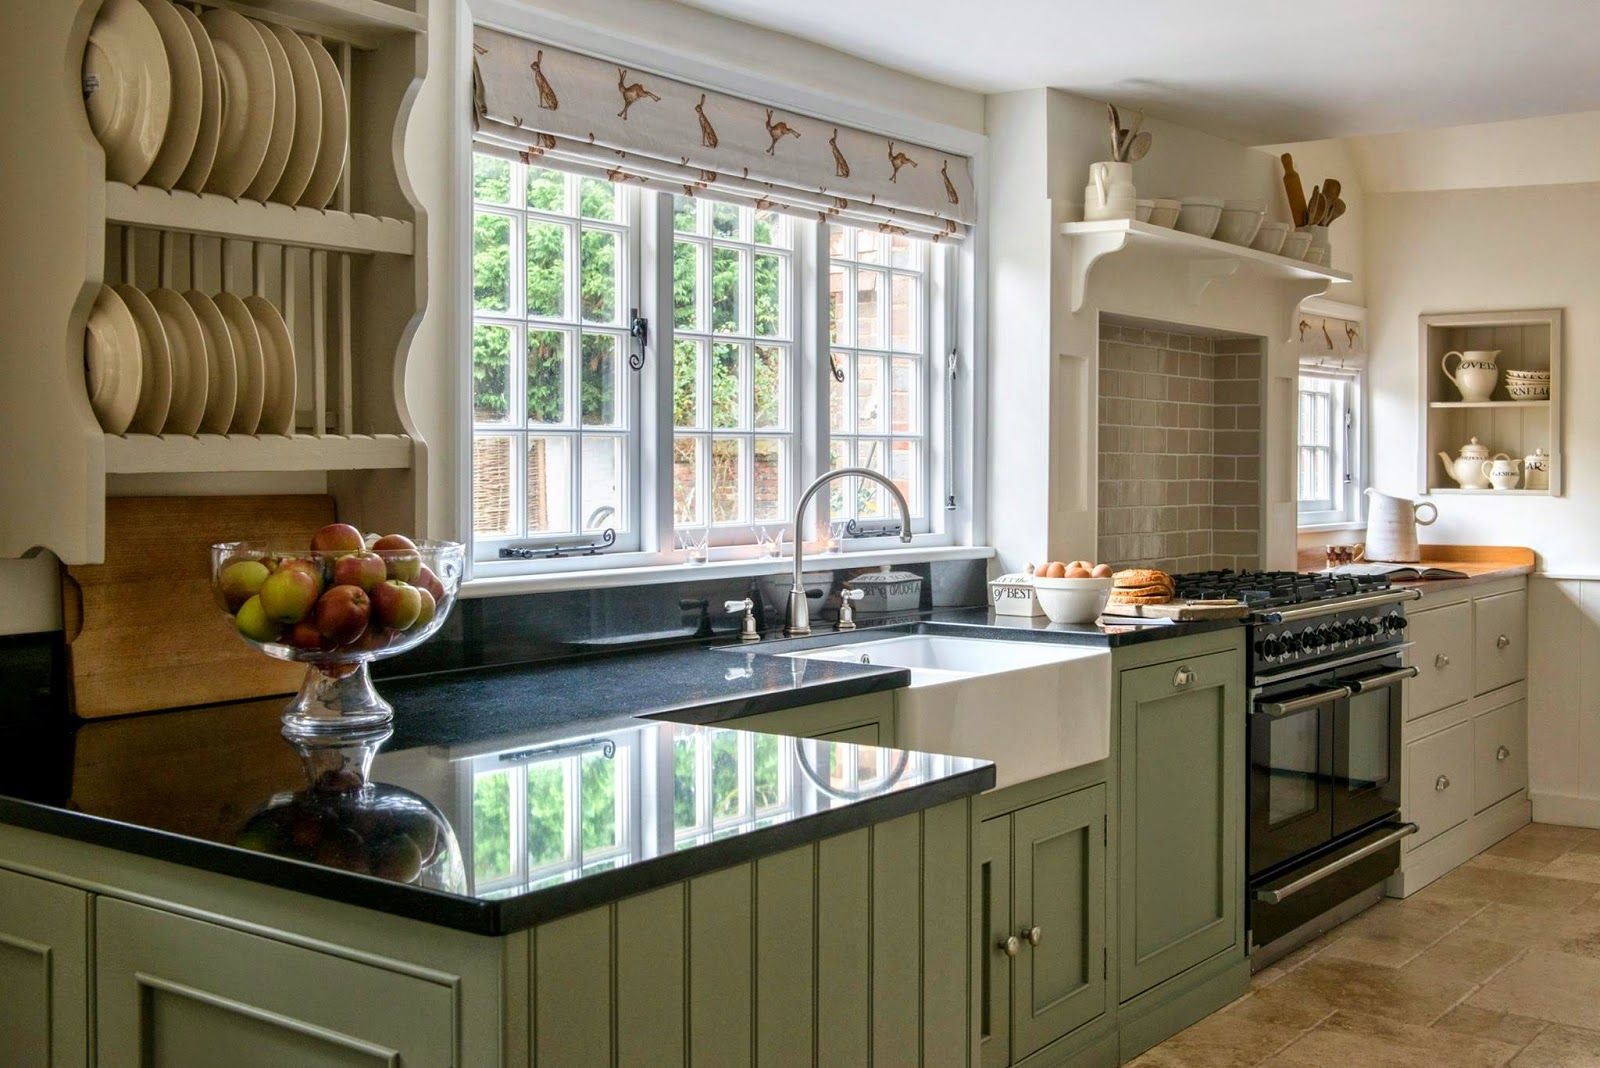 The blend of work surfaces in oak and granite in the